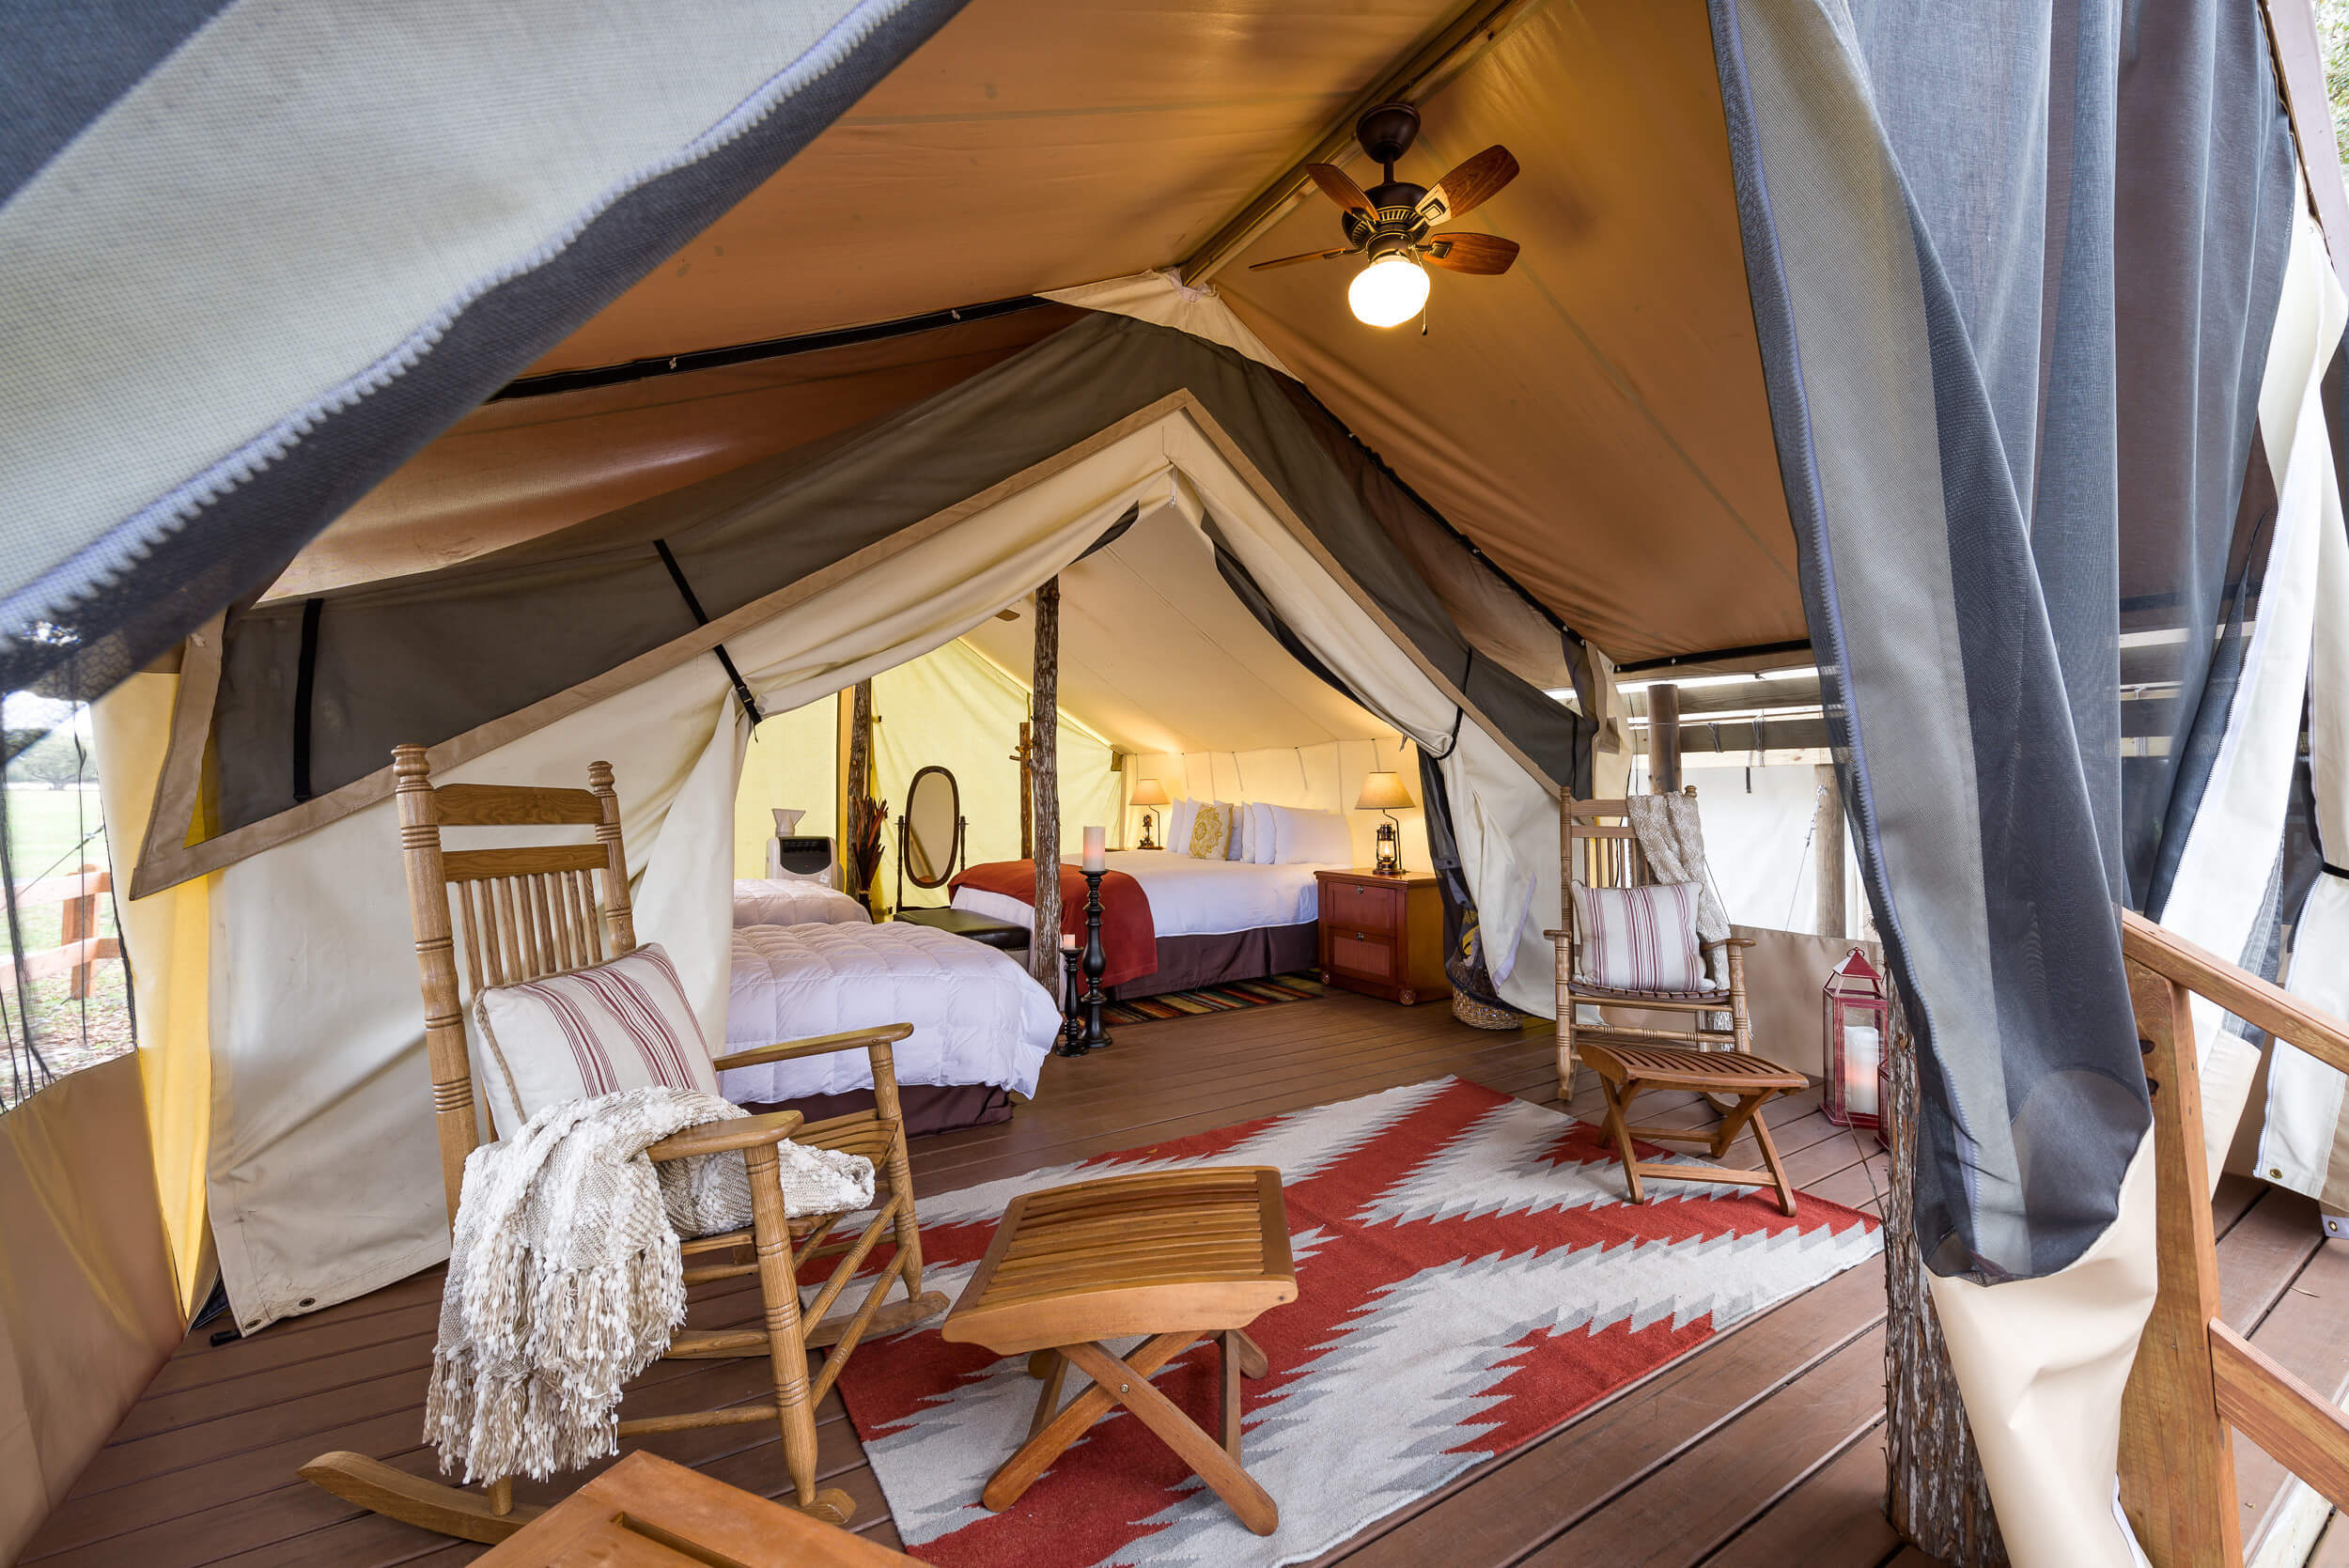 Glamping Tent Resort near Orlando, FL | River Ranch Resort & Rodeo | Westgate Resorts